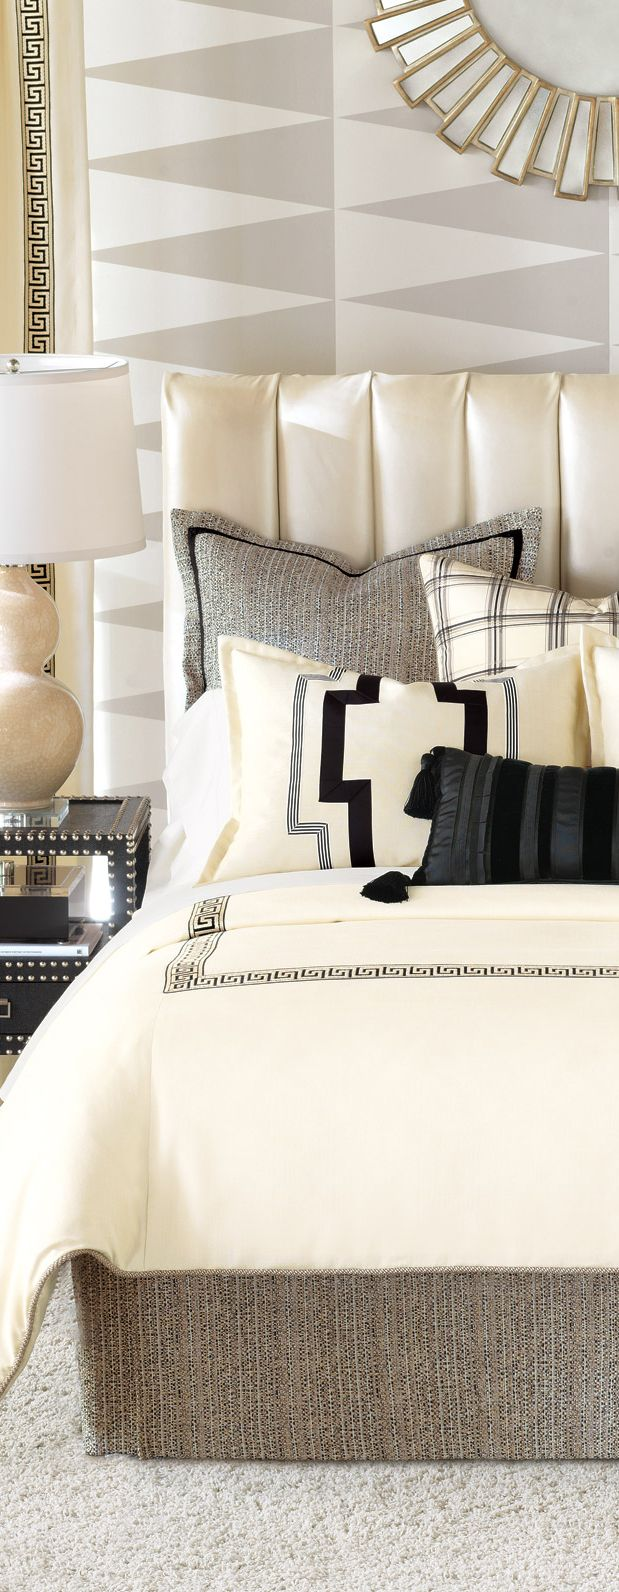 best eastern accents images on pinterest  bedding sets luxury  - eastern accents abernathy bedding